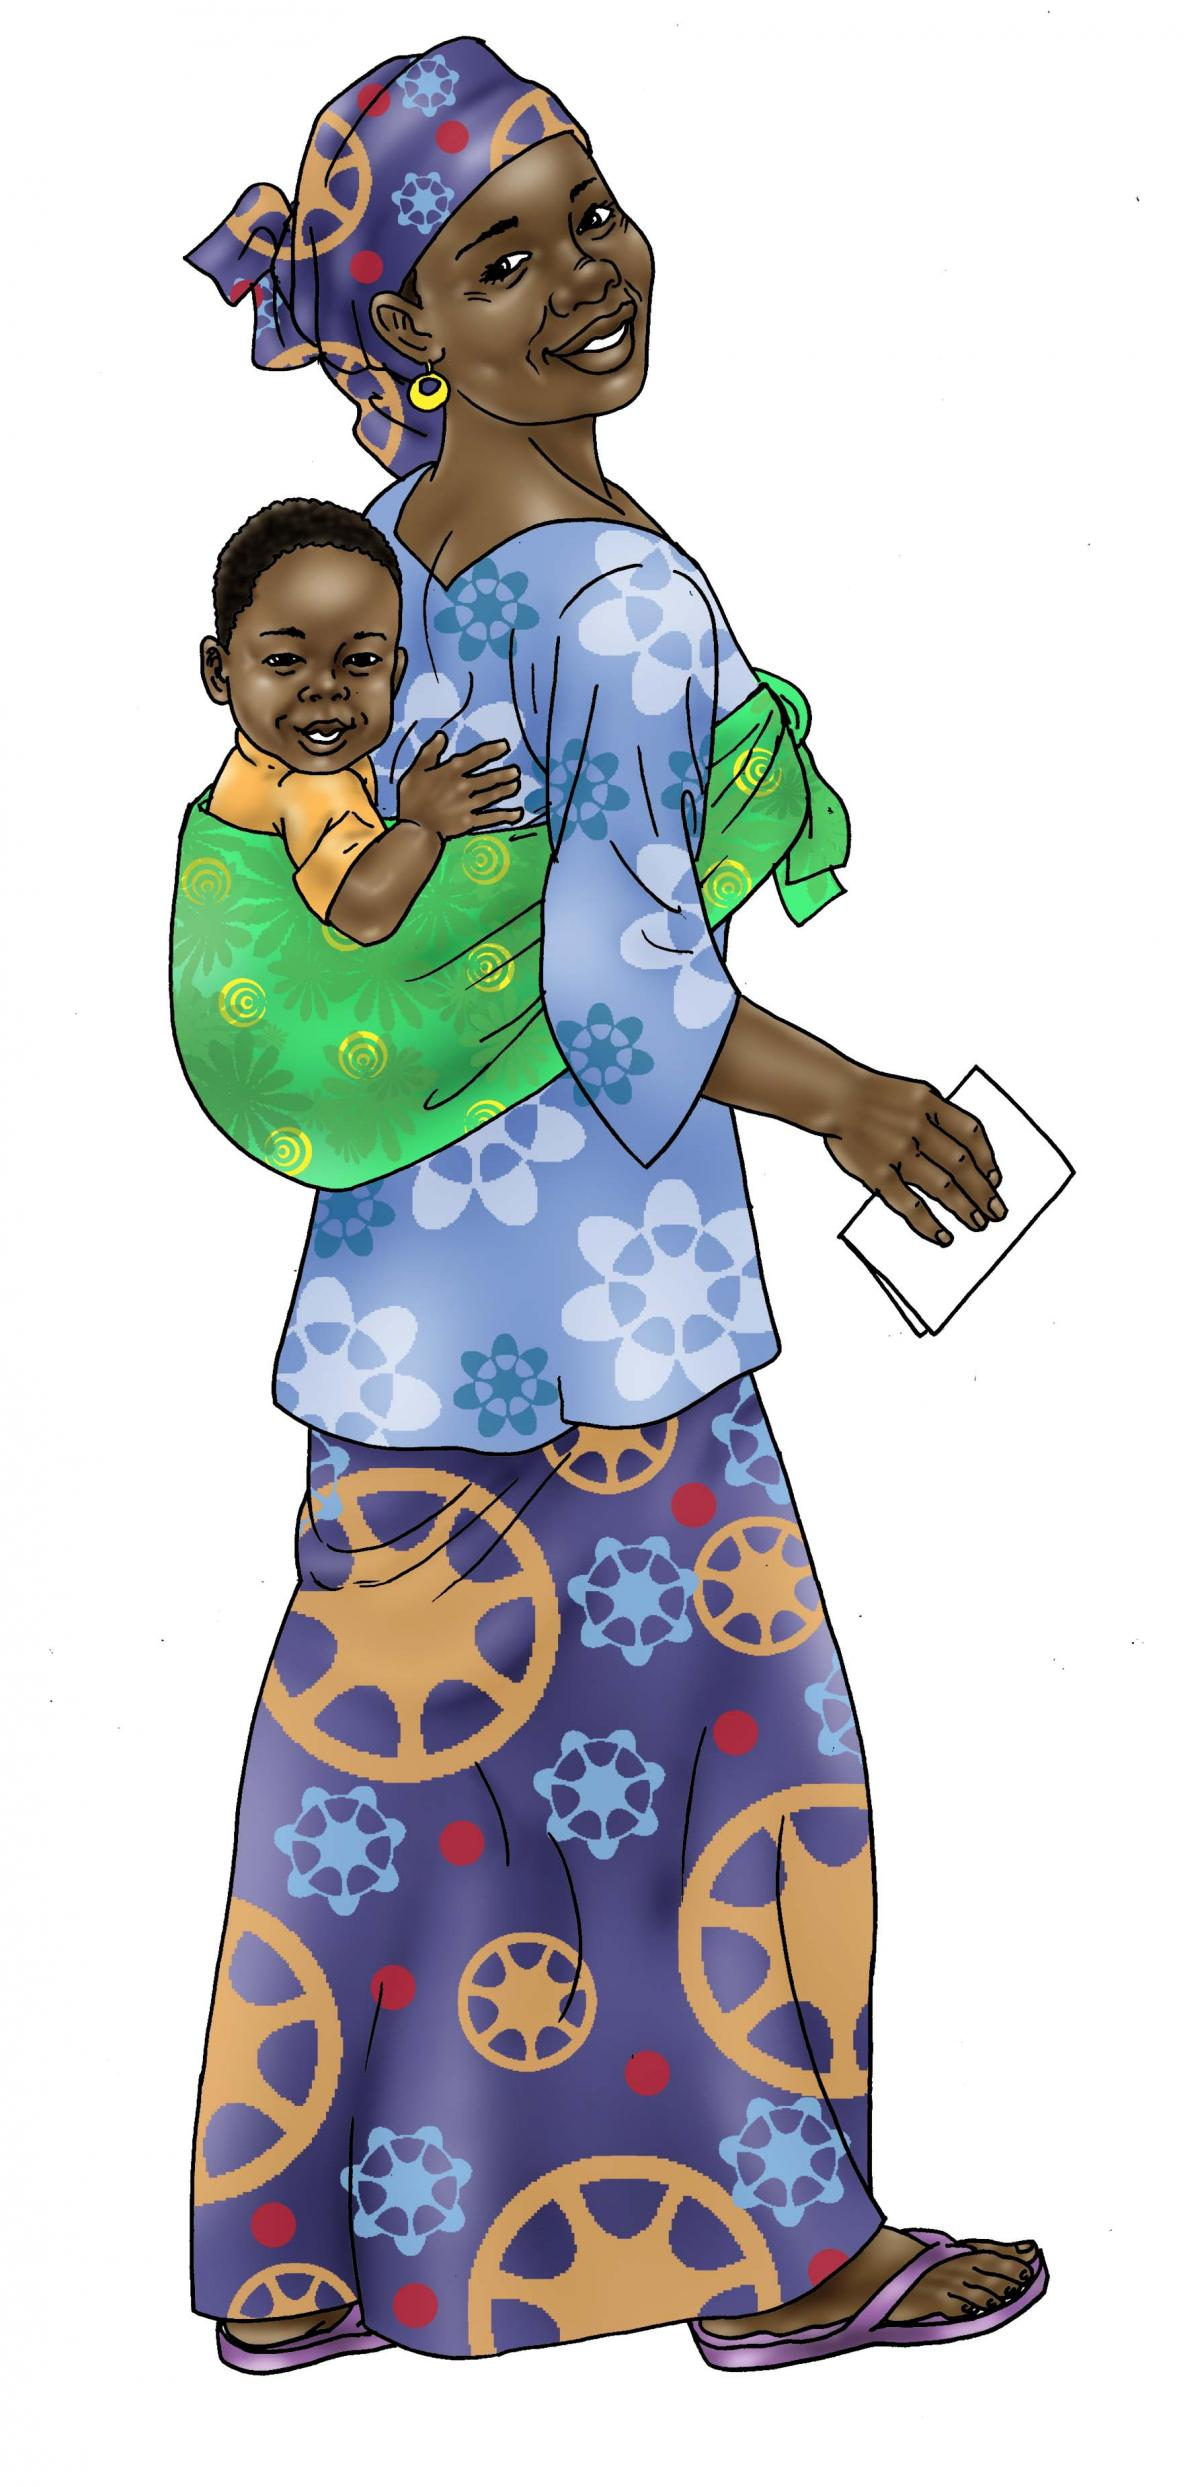 Sick Baby Health Care - Mother holding healthy baby 0-24 mo - 04 - Niger